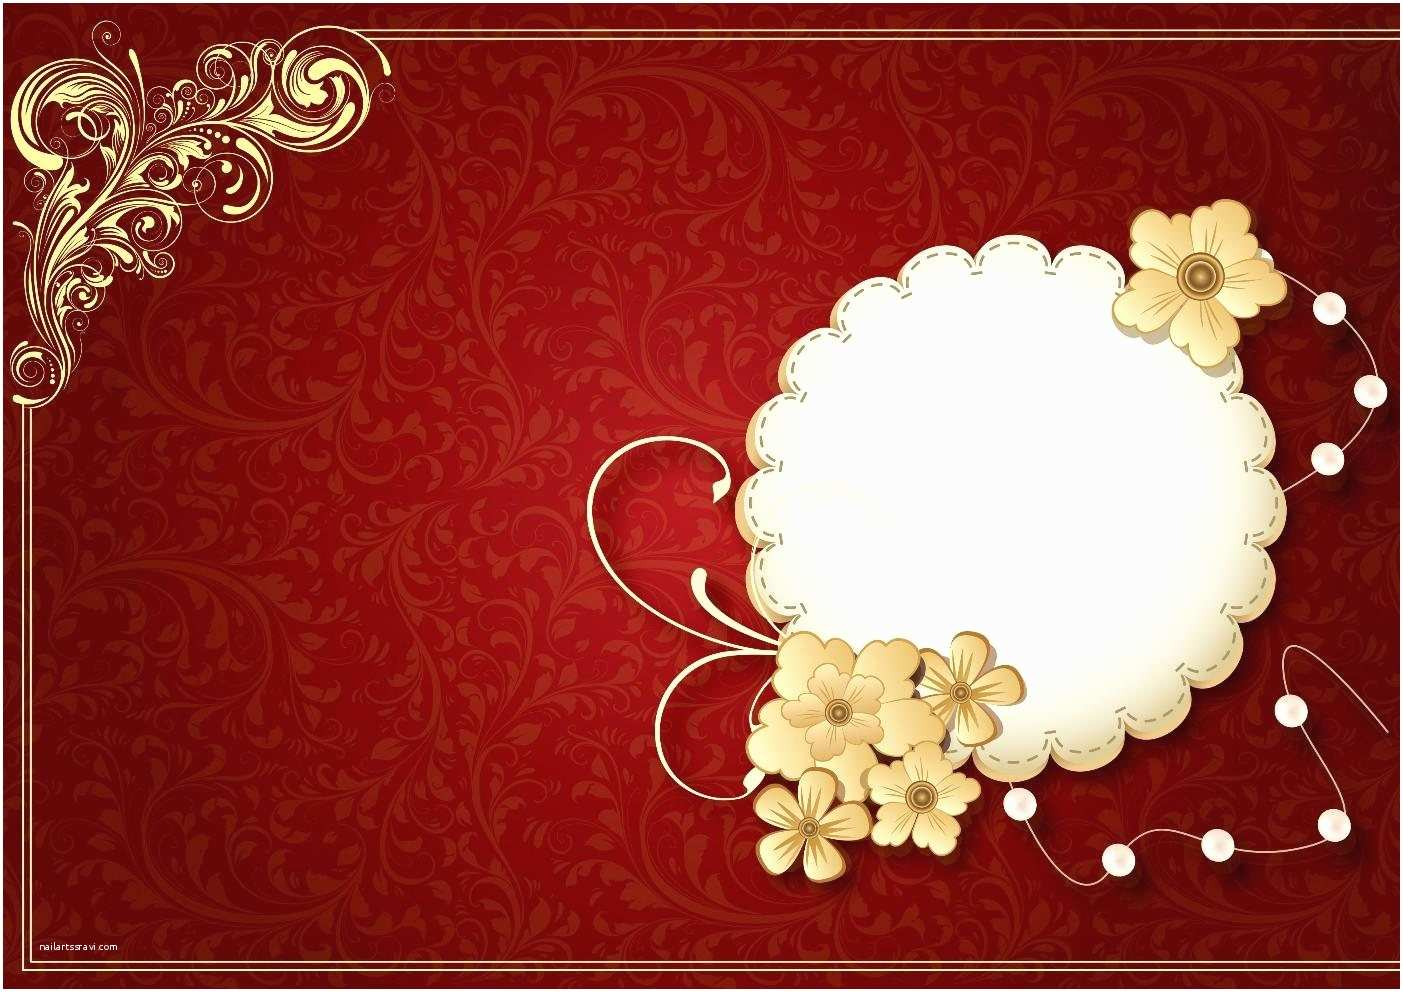 Indian Wedding Invitation Designs Free Download Indian Wedding Invitation Background Designs Free Download